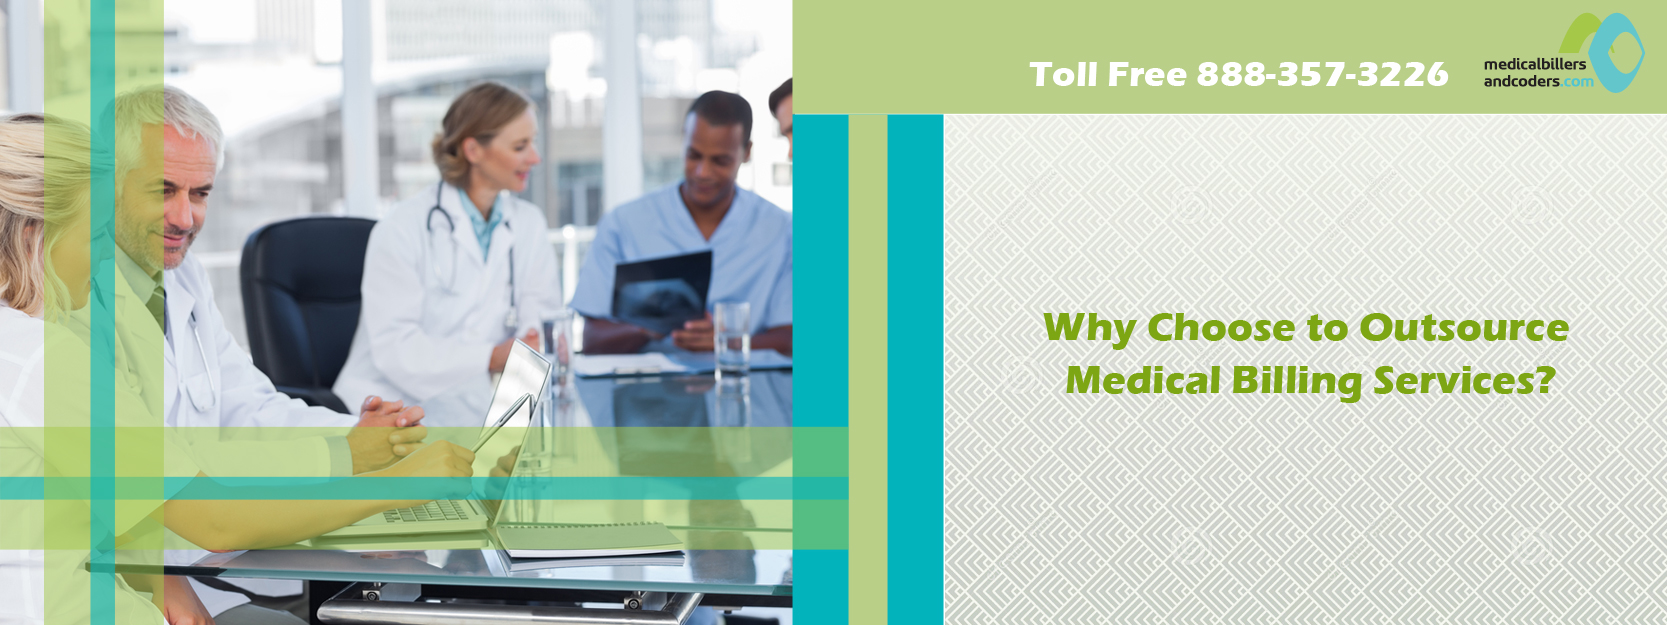 blog-why-choose-to-outsource-medical-billing-services